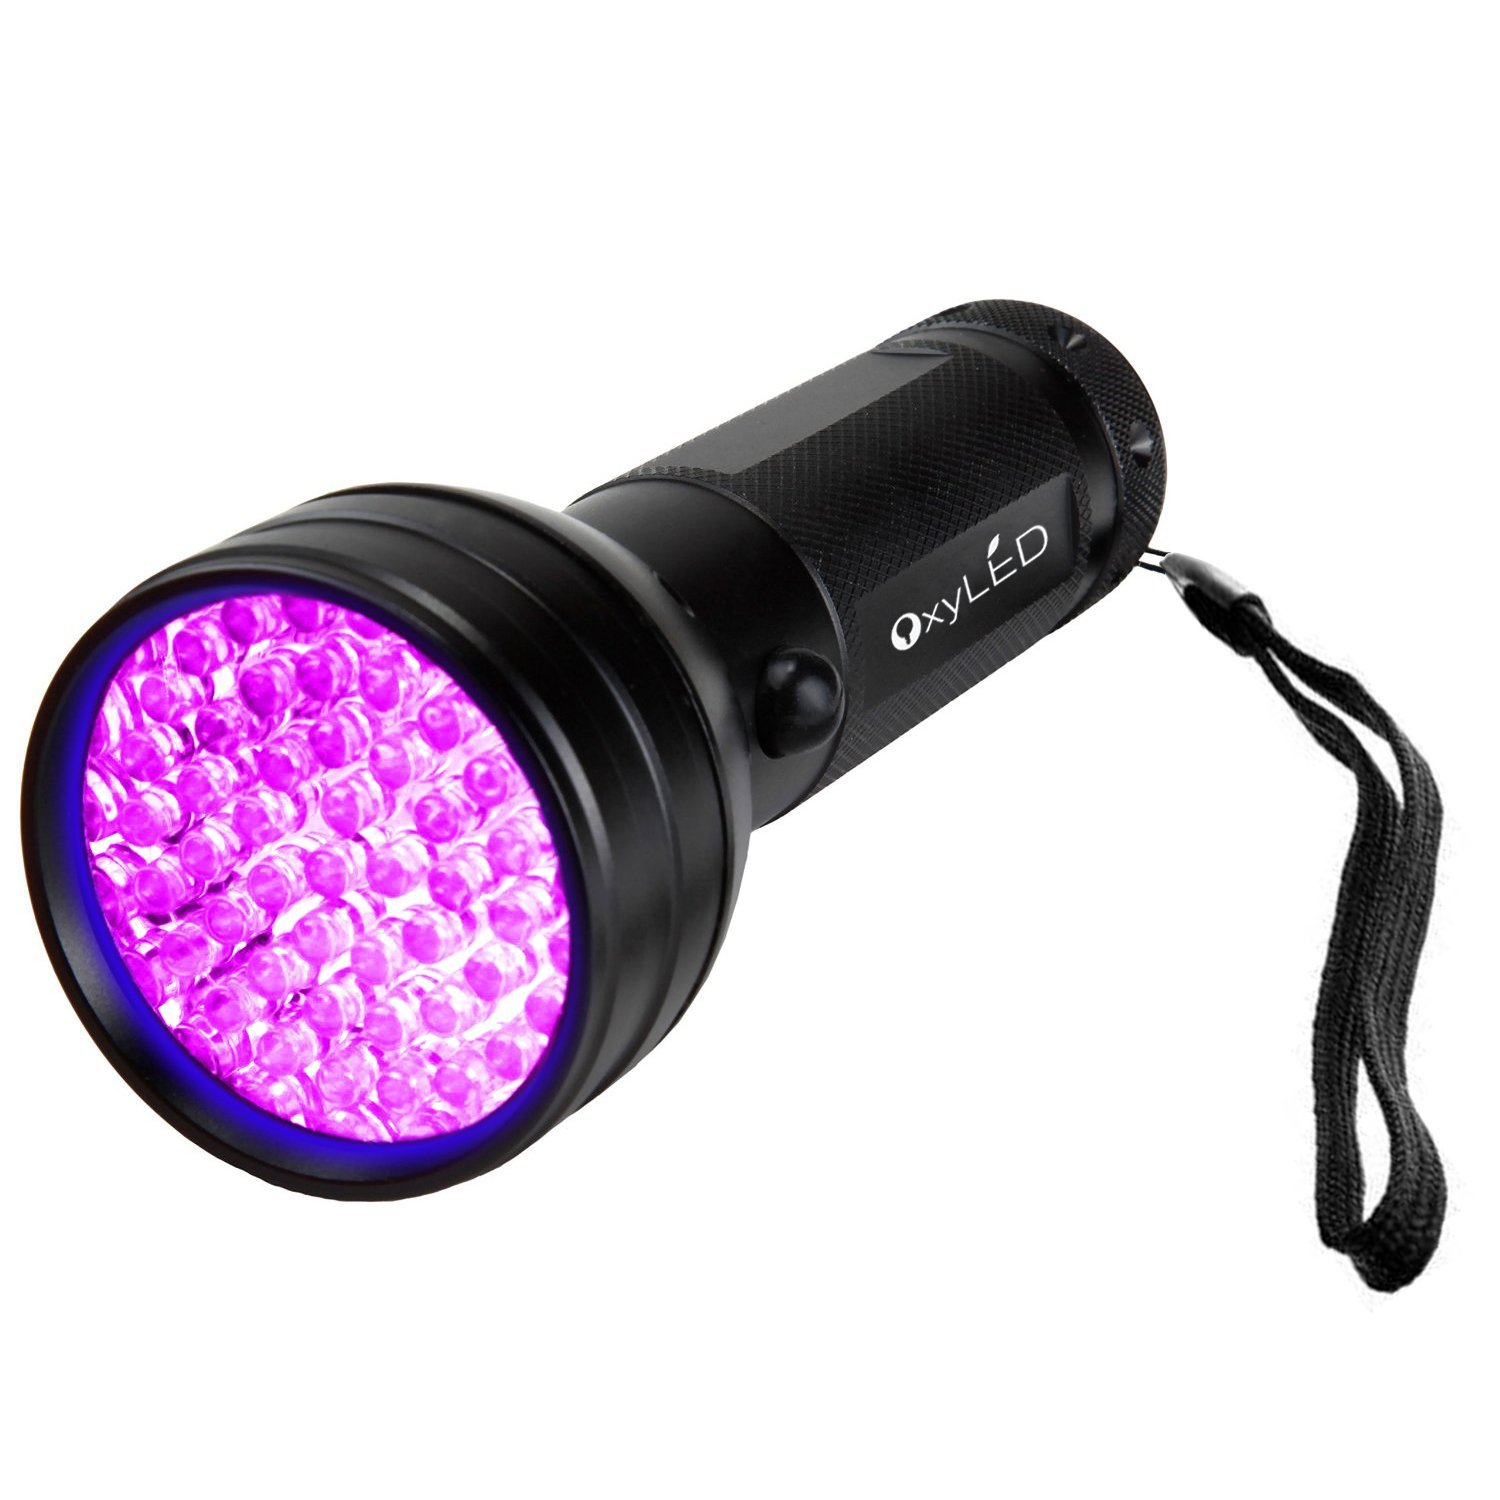 OxyLED UV Flashlight Black Light, 51 LED 395 nM Ultraviolet Blacklight Detector for Dog Urine, Pet Stains and Bed Bug Image 1 of 4